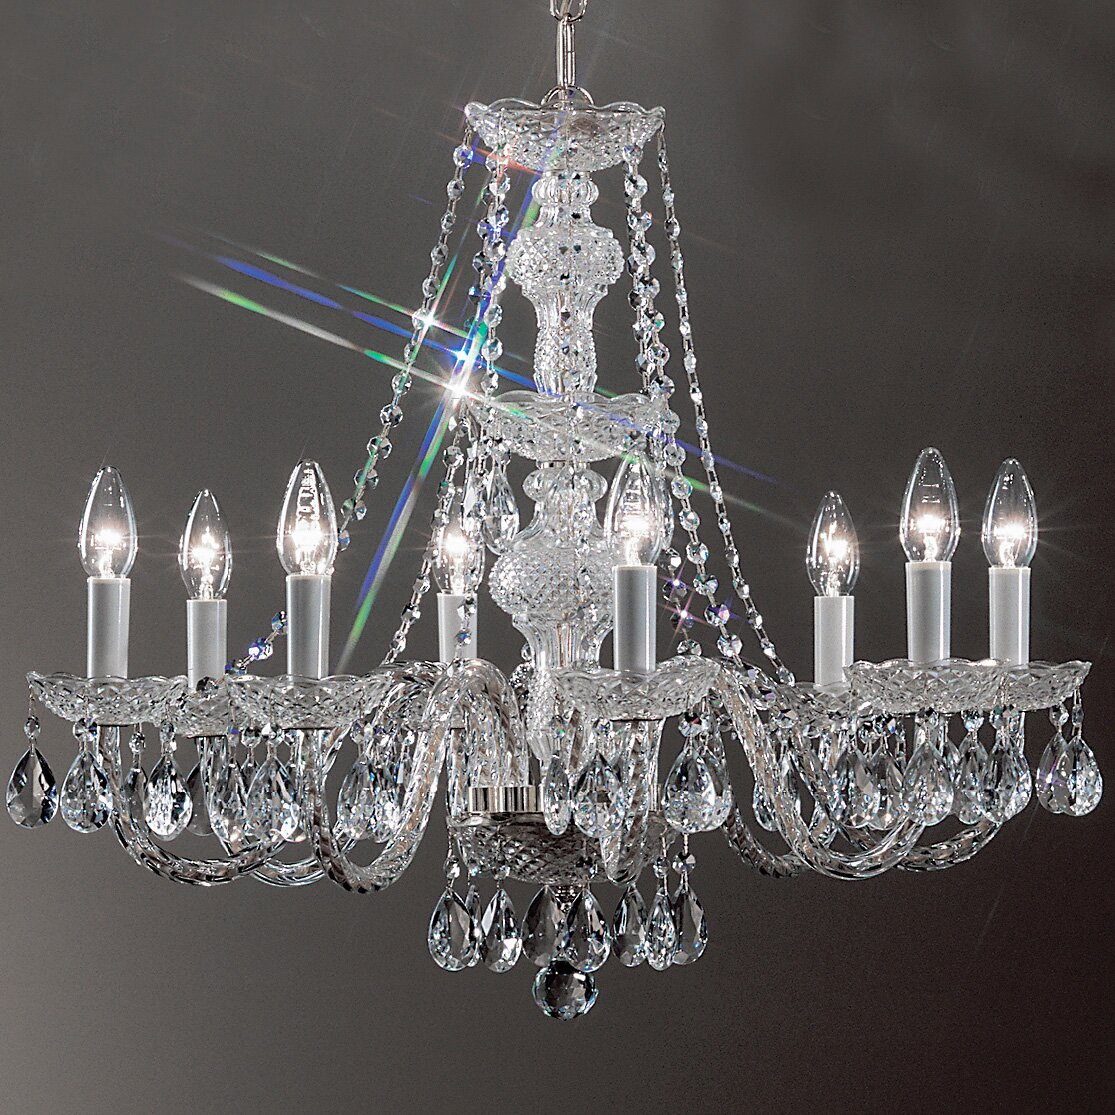 Wayfair Chandelier: Classic Lighting Monticello 8 Light Chandelier & Reviews